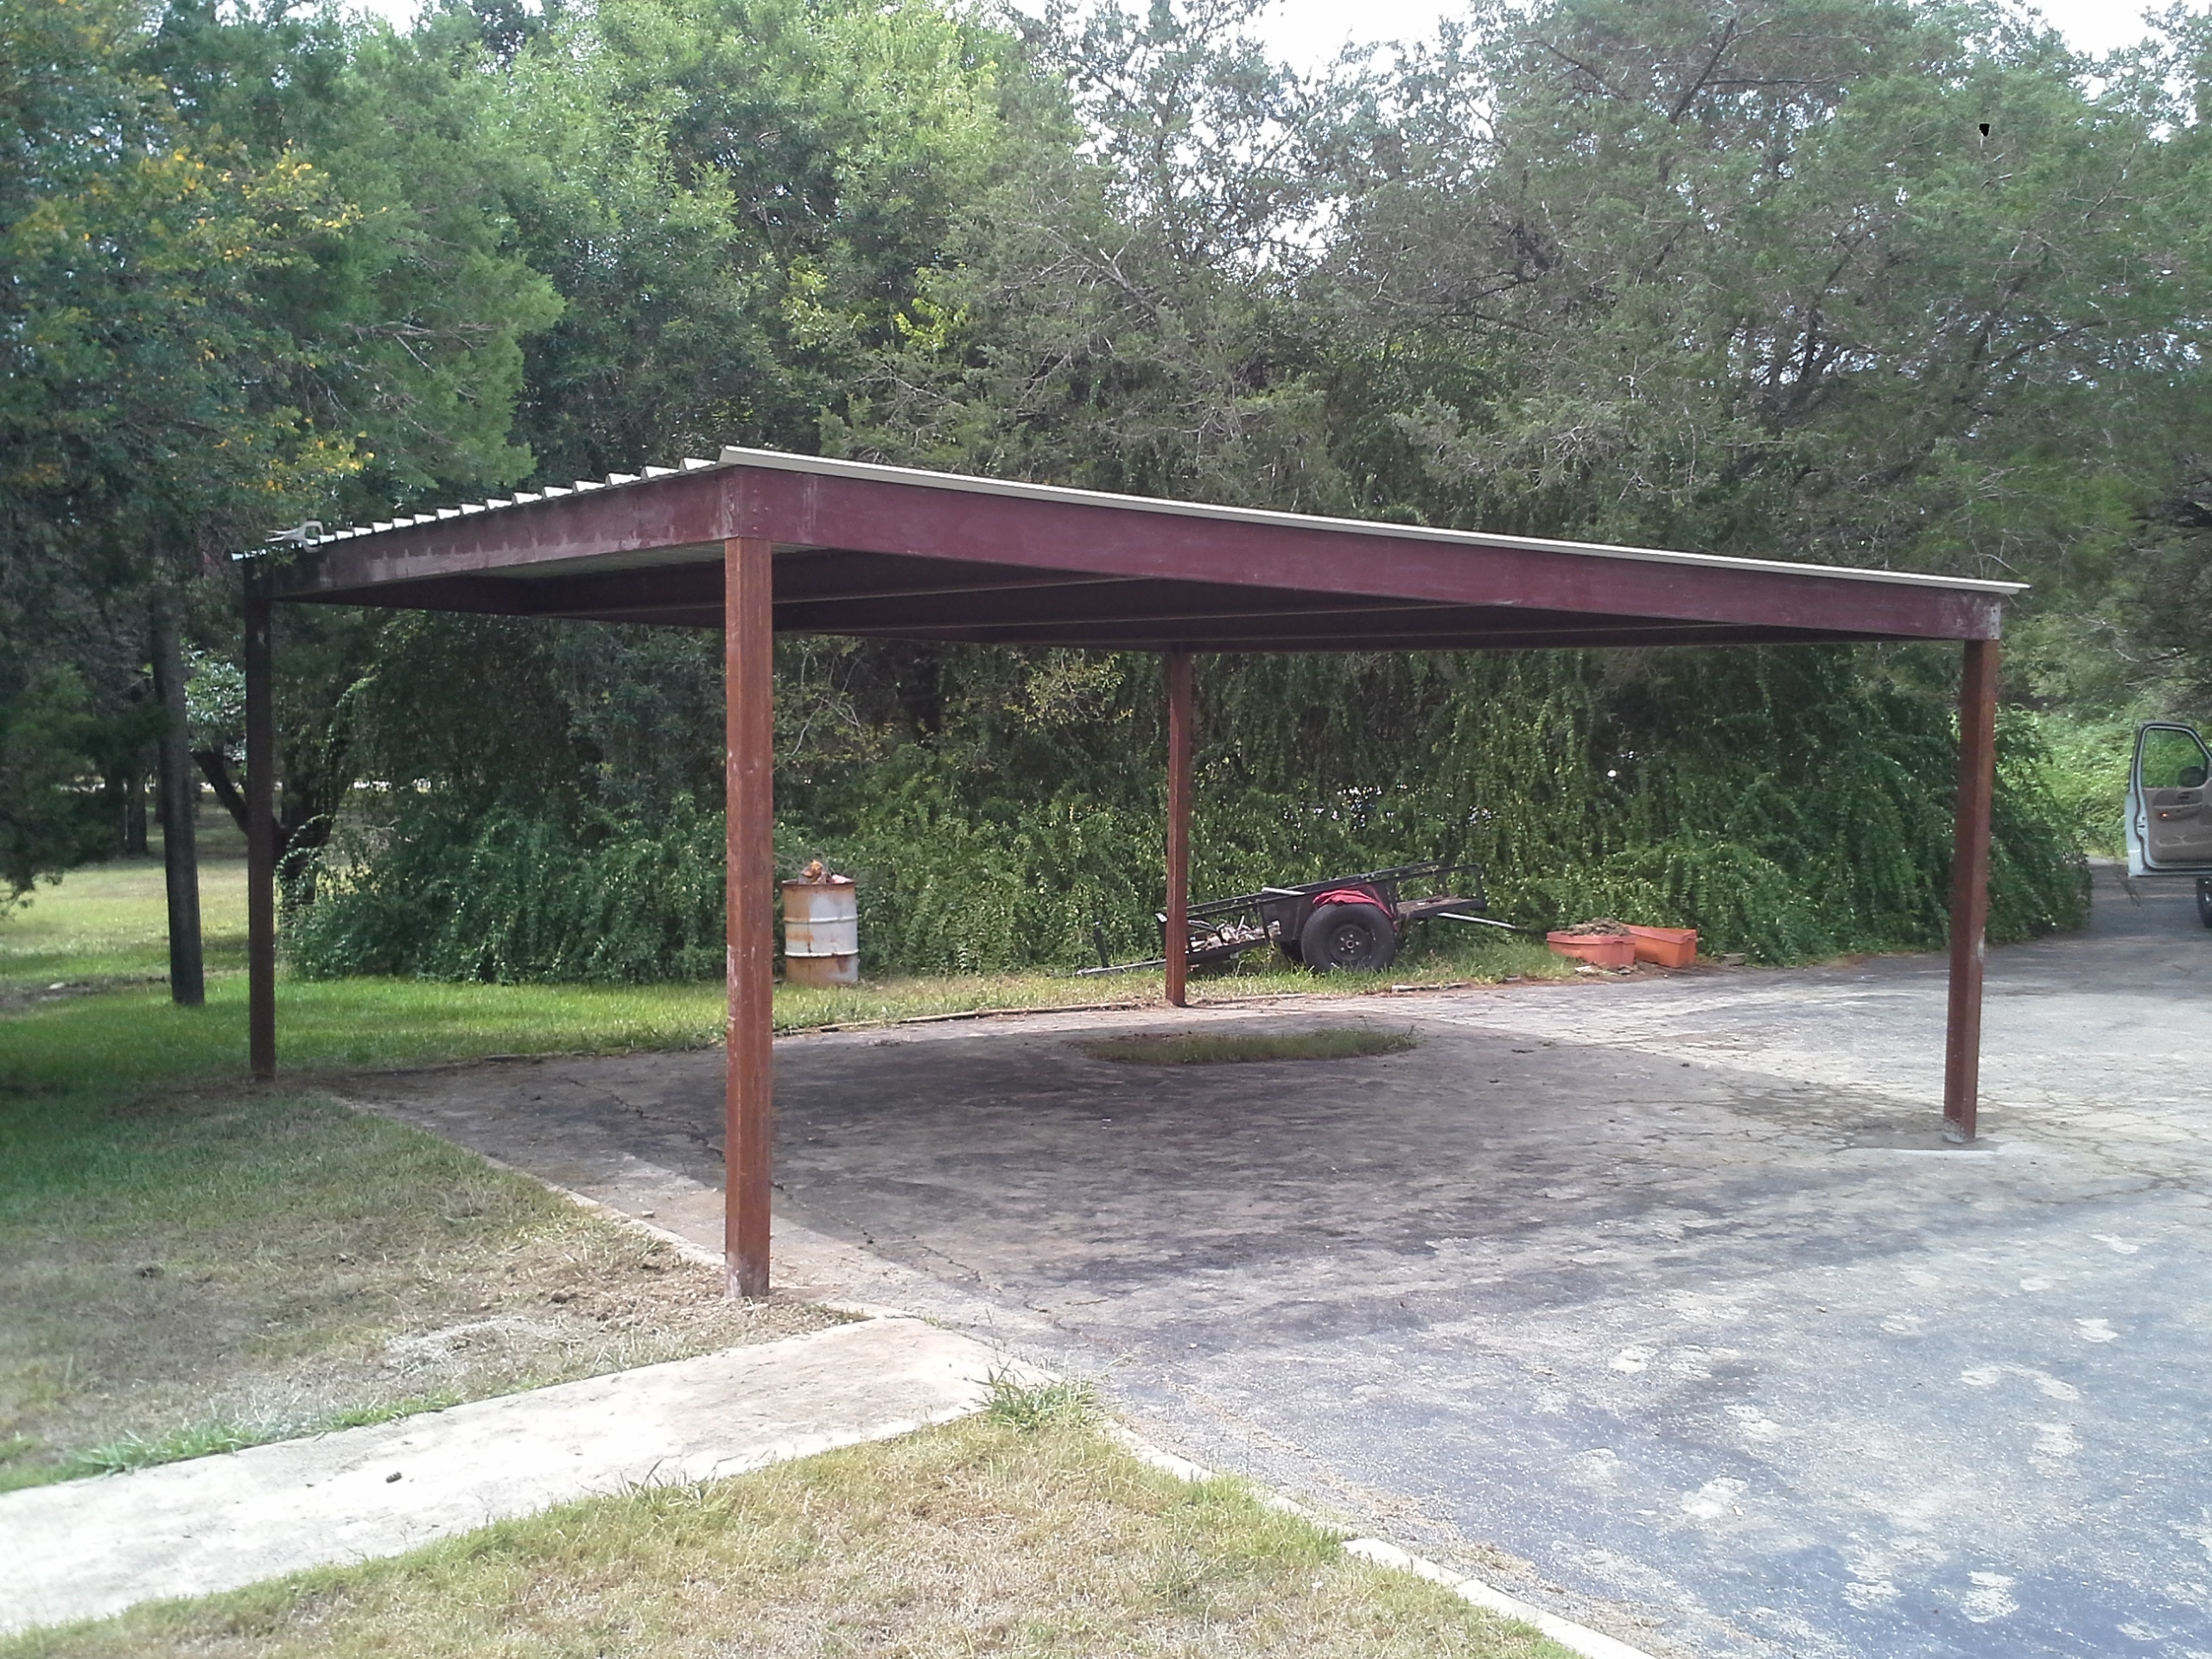 20 X 20 Carport Free Standing 11 Carport Patio Covers